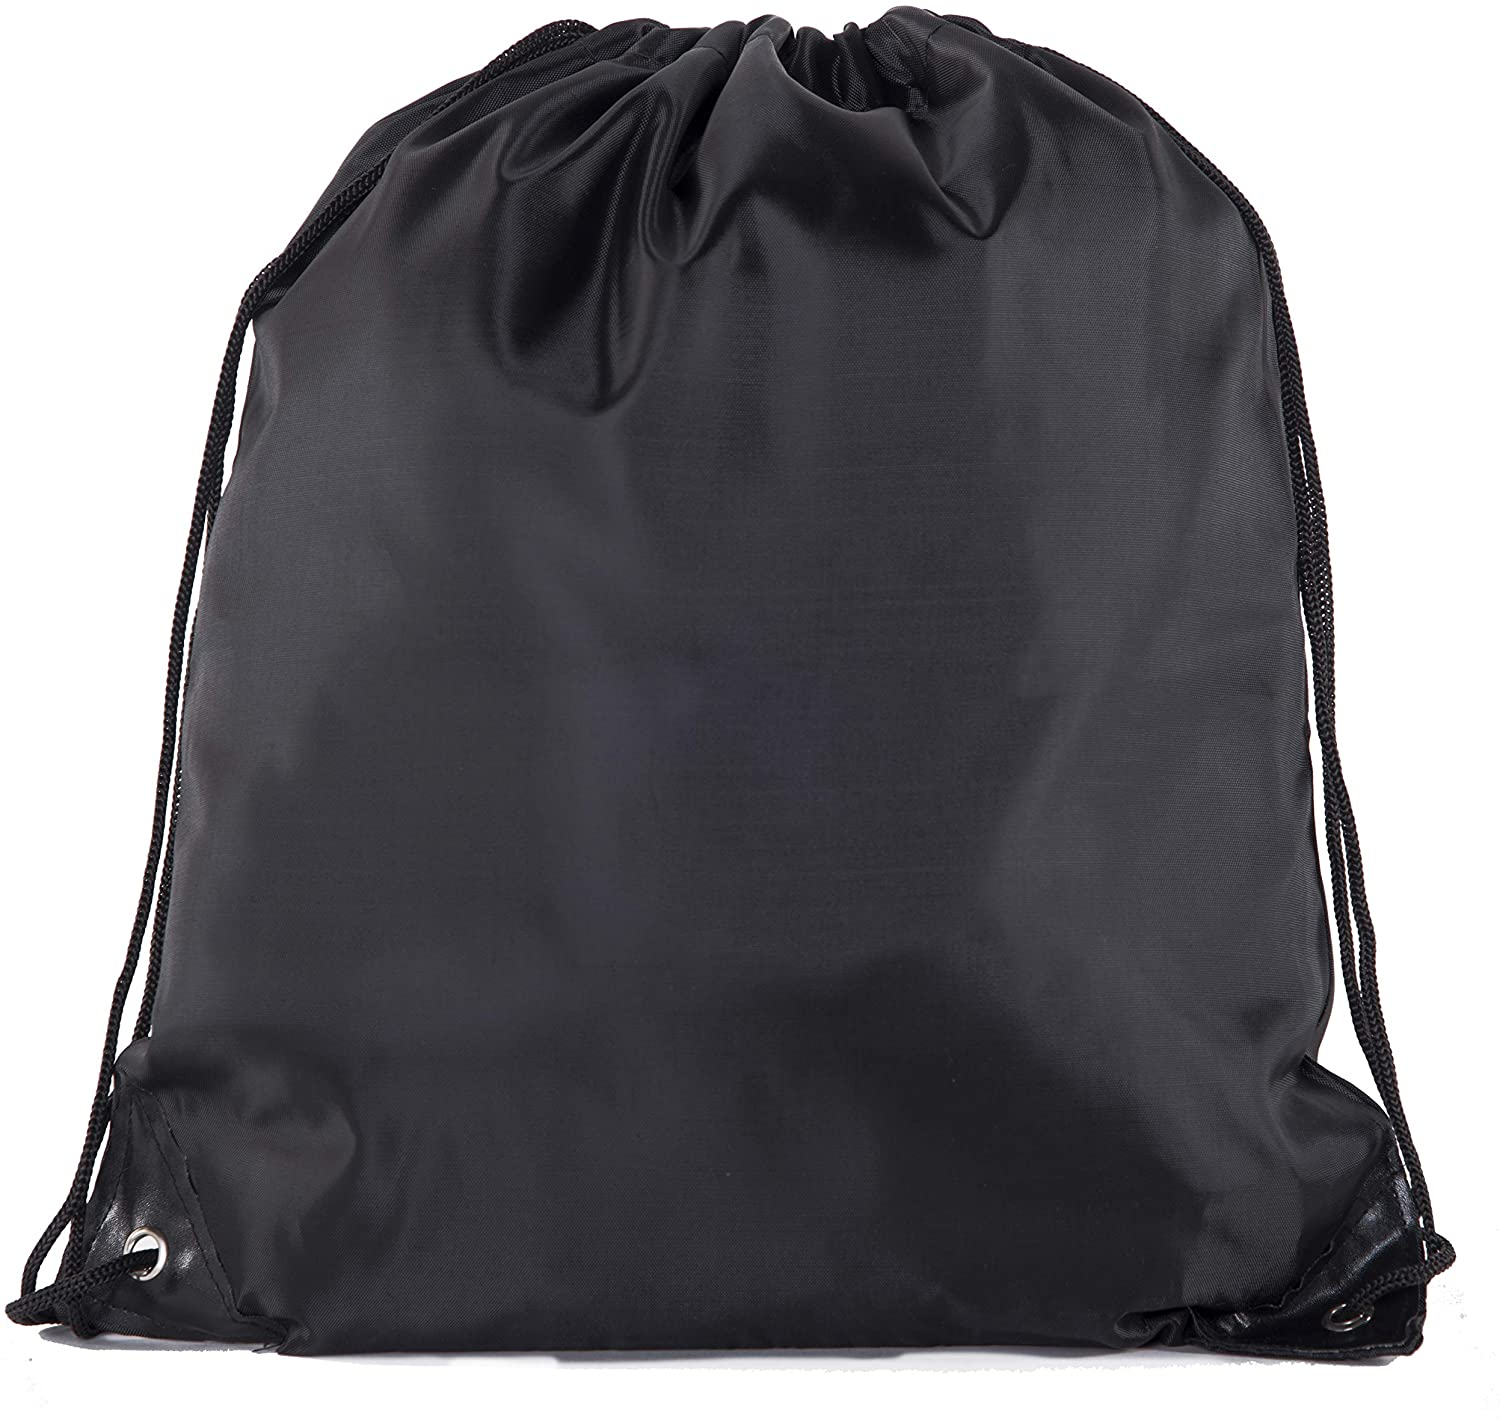 Cheap Drawstring Backpack sack Today's only bags Wholesale Bags Adult